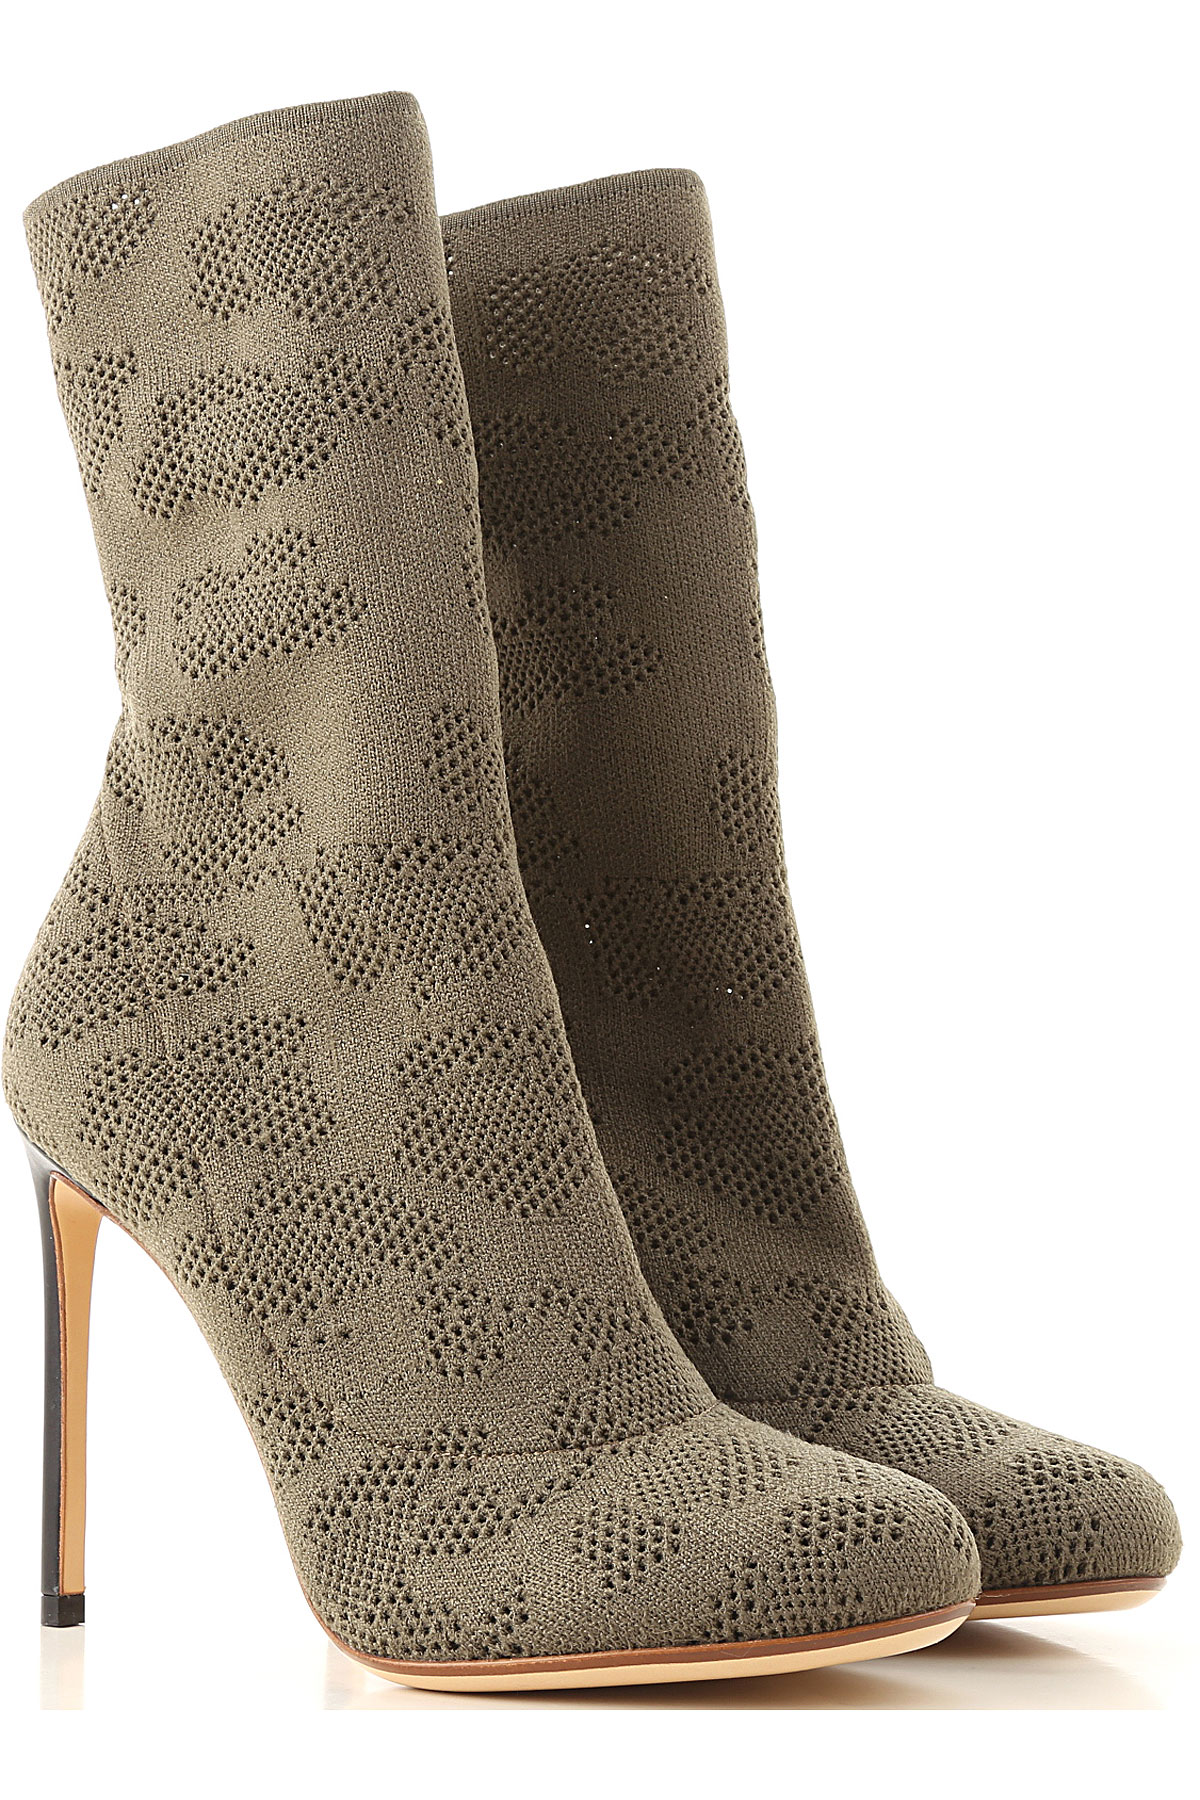 Francesco Russo Boots for Women, Booties On Sale in Outlet, Kaki, Fabric, 2019, 10 6 7 8 8.5 9